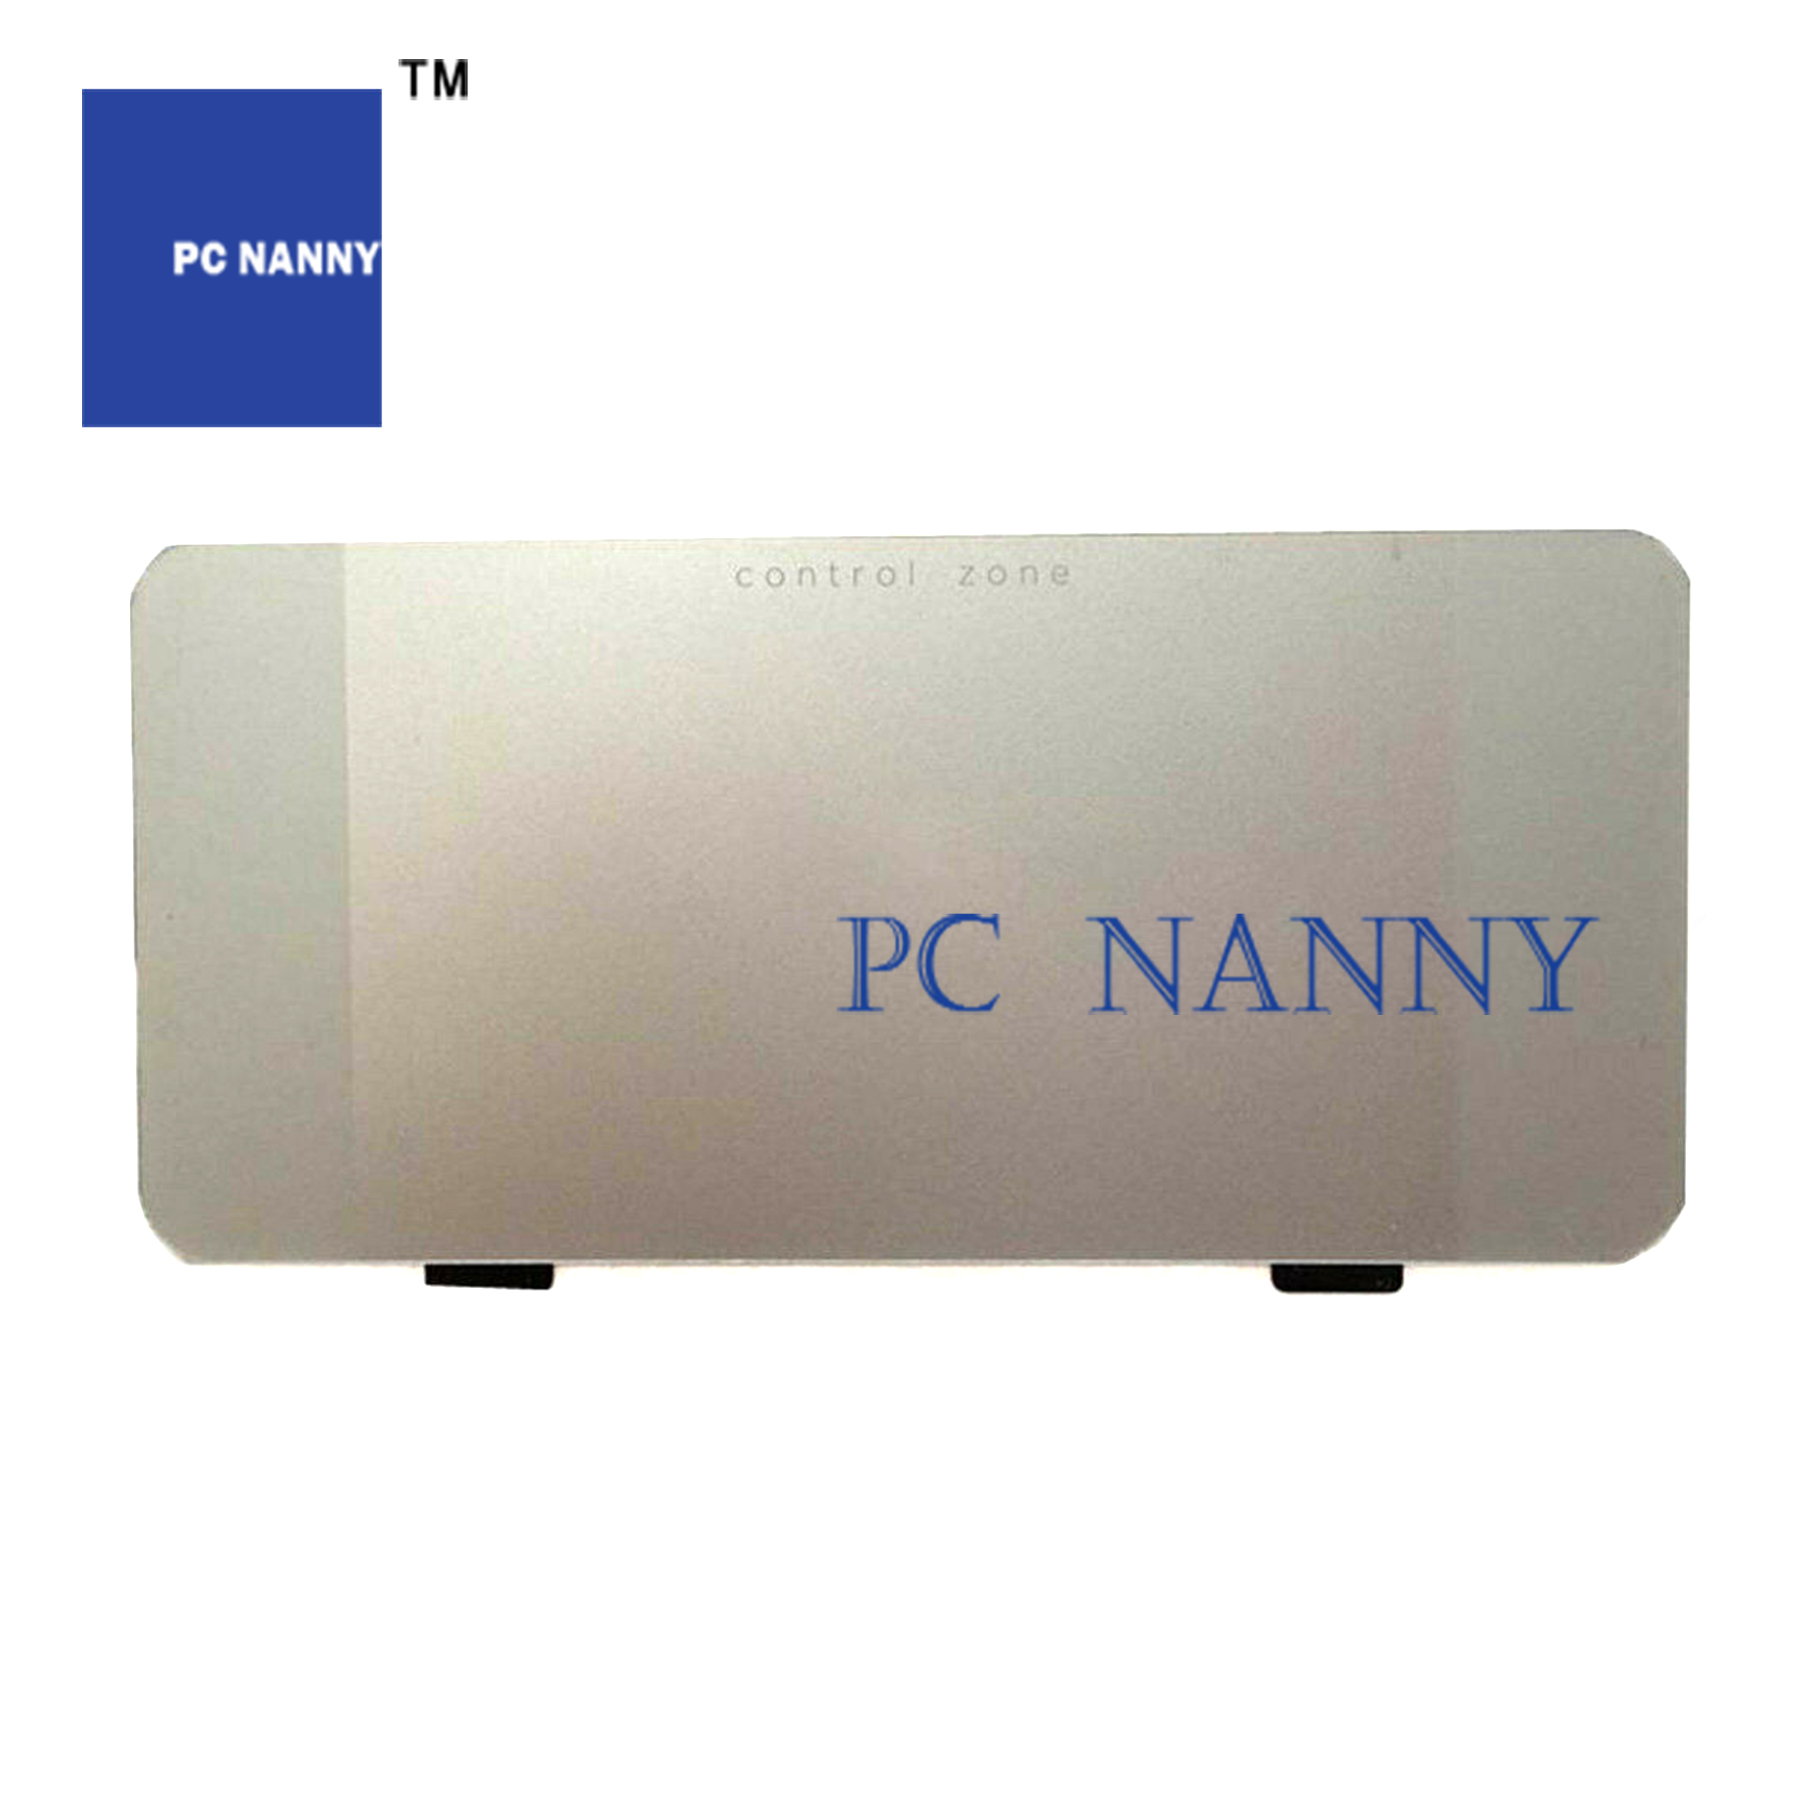 FOR HP ENVY 15-K Series 15-k001tu 15-K Laptop Touchpad Mouse Board Speaker Set Left Right 3BY14TP10 3BY14TP20 3BY34TP00